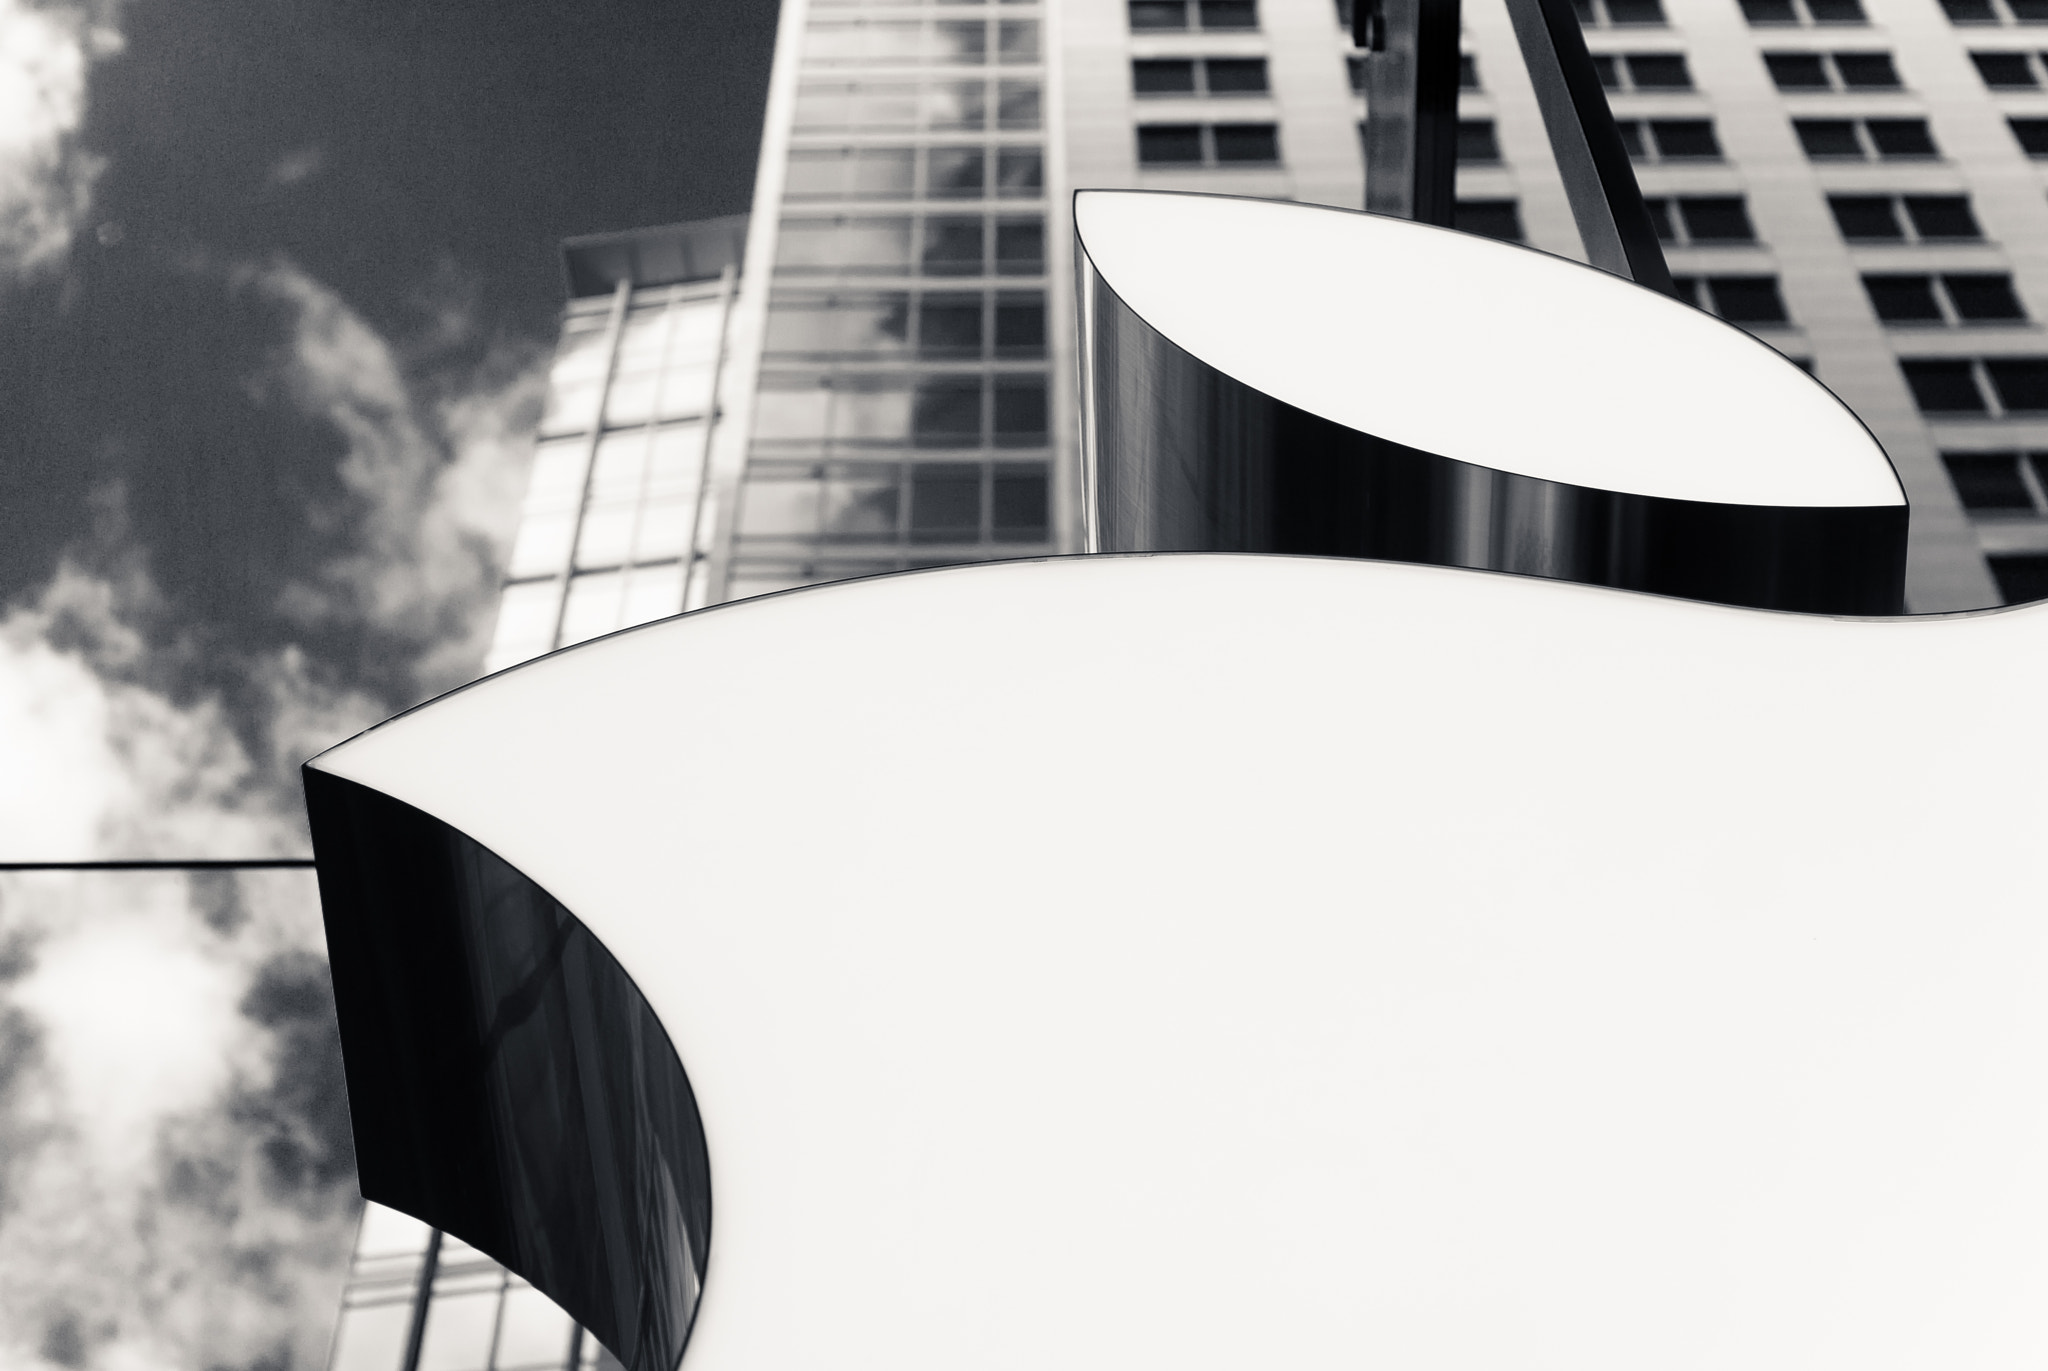 Photograph apple by Phill Farrugia on 500px